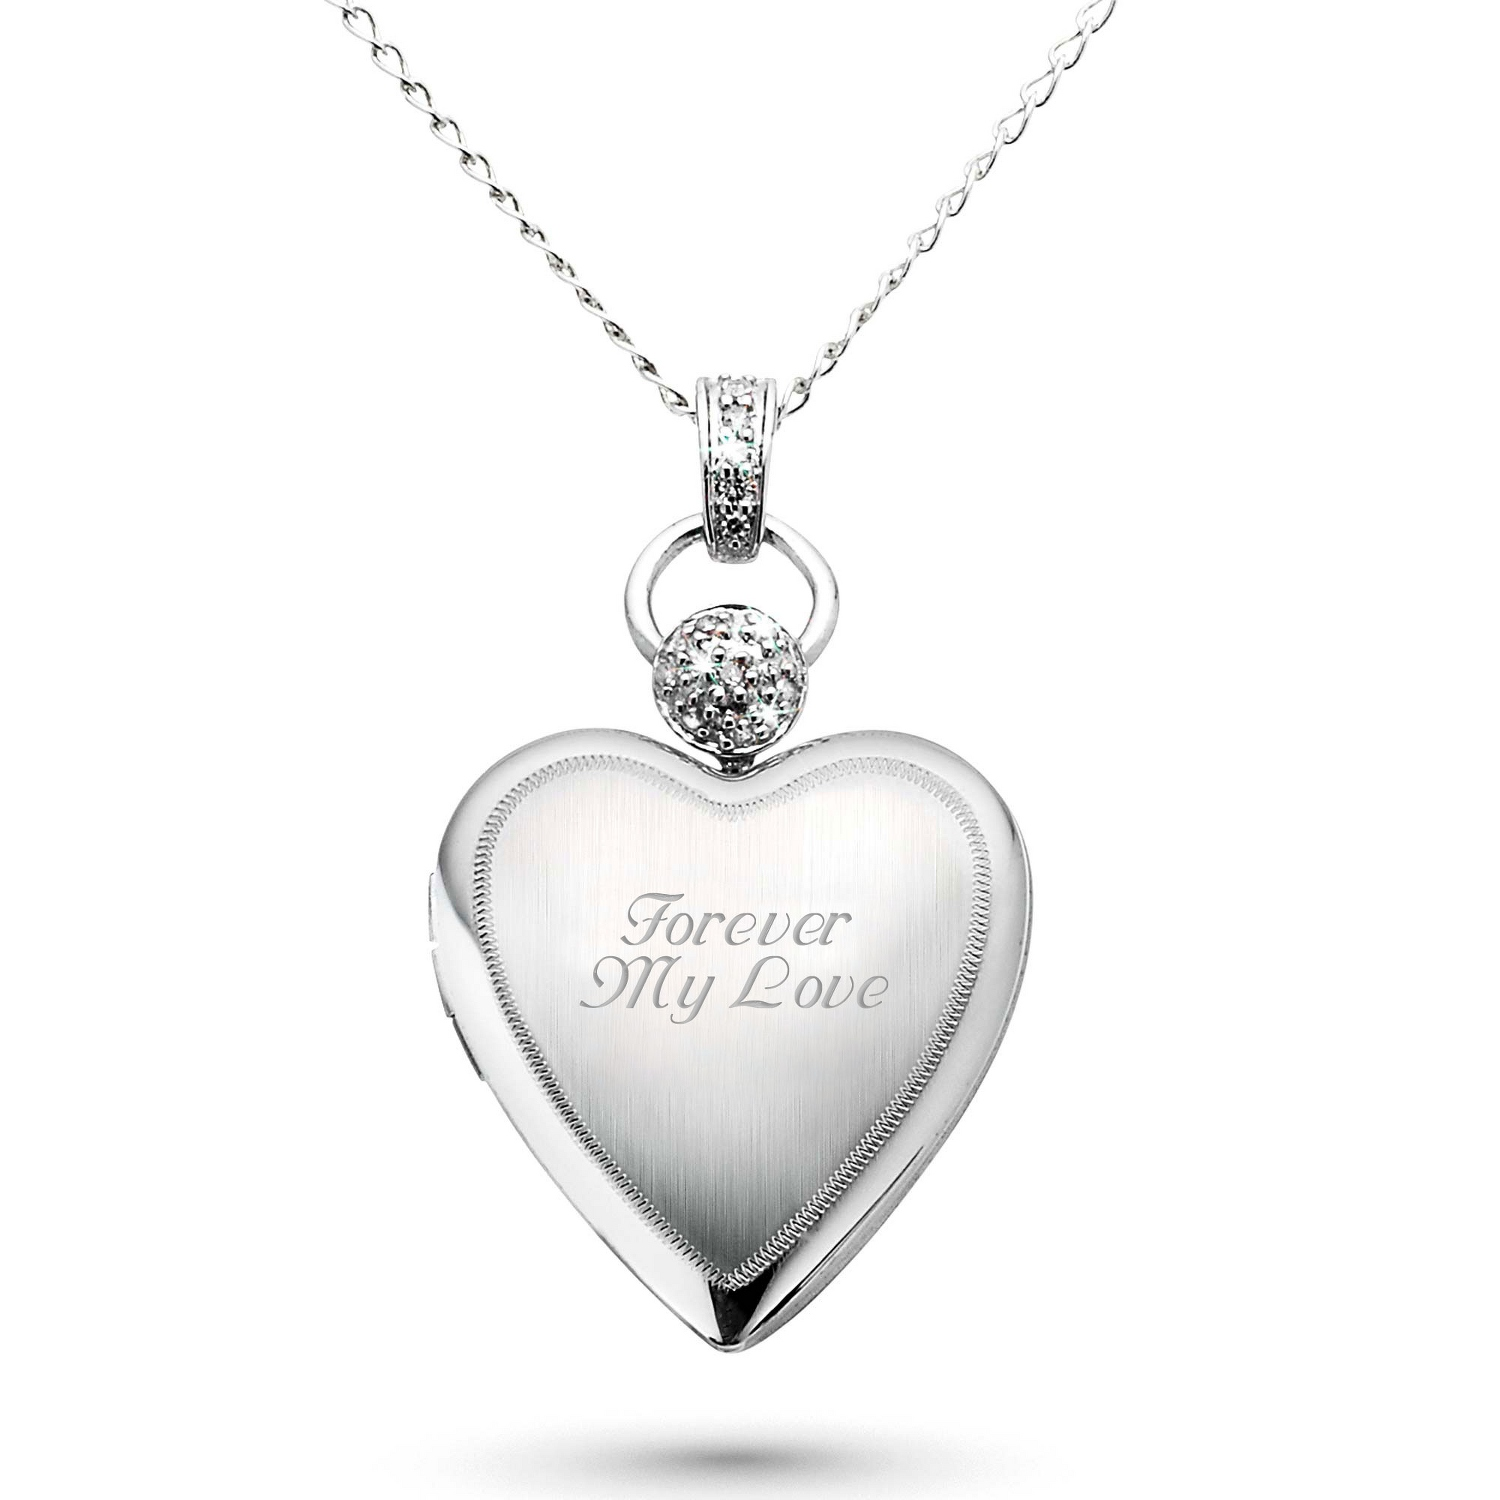 low silver lockets couple chain prices jewellery likes heart alloy at in for amazon buy india dp male women online pendant store